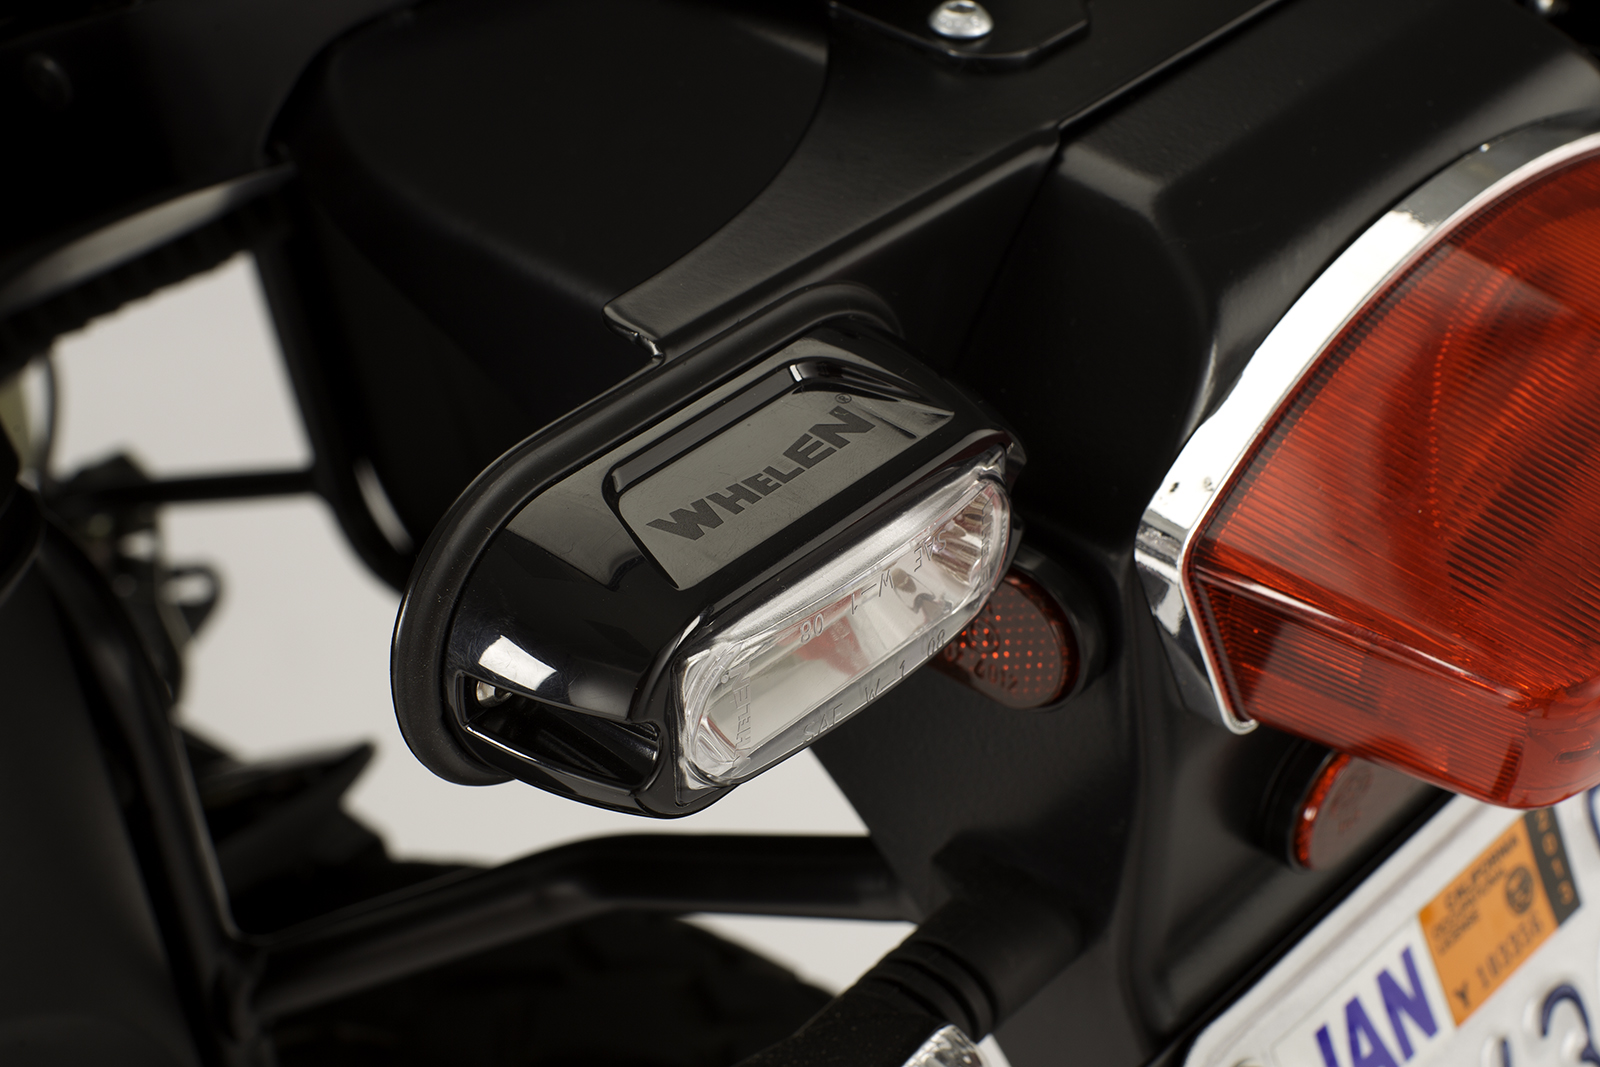 2012 Zero DS Police Motorcycles: Whelen LINZ 6 rear facing LED